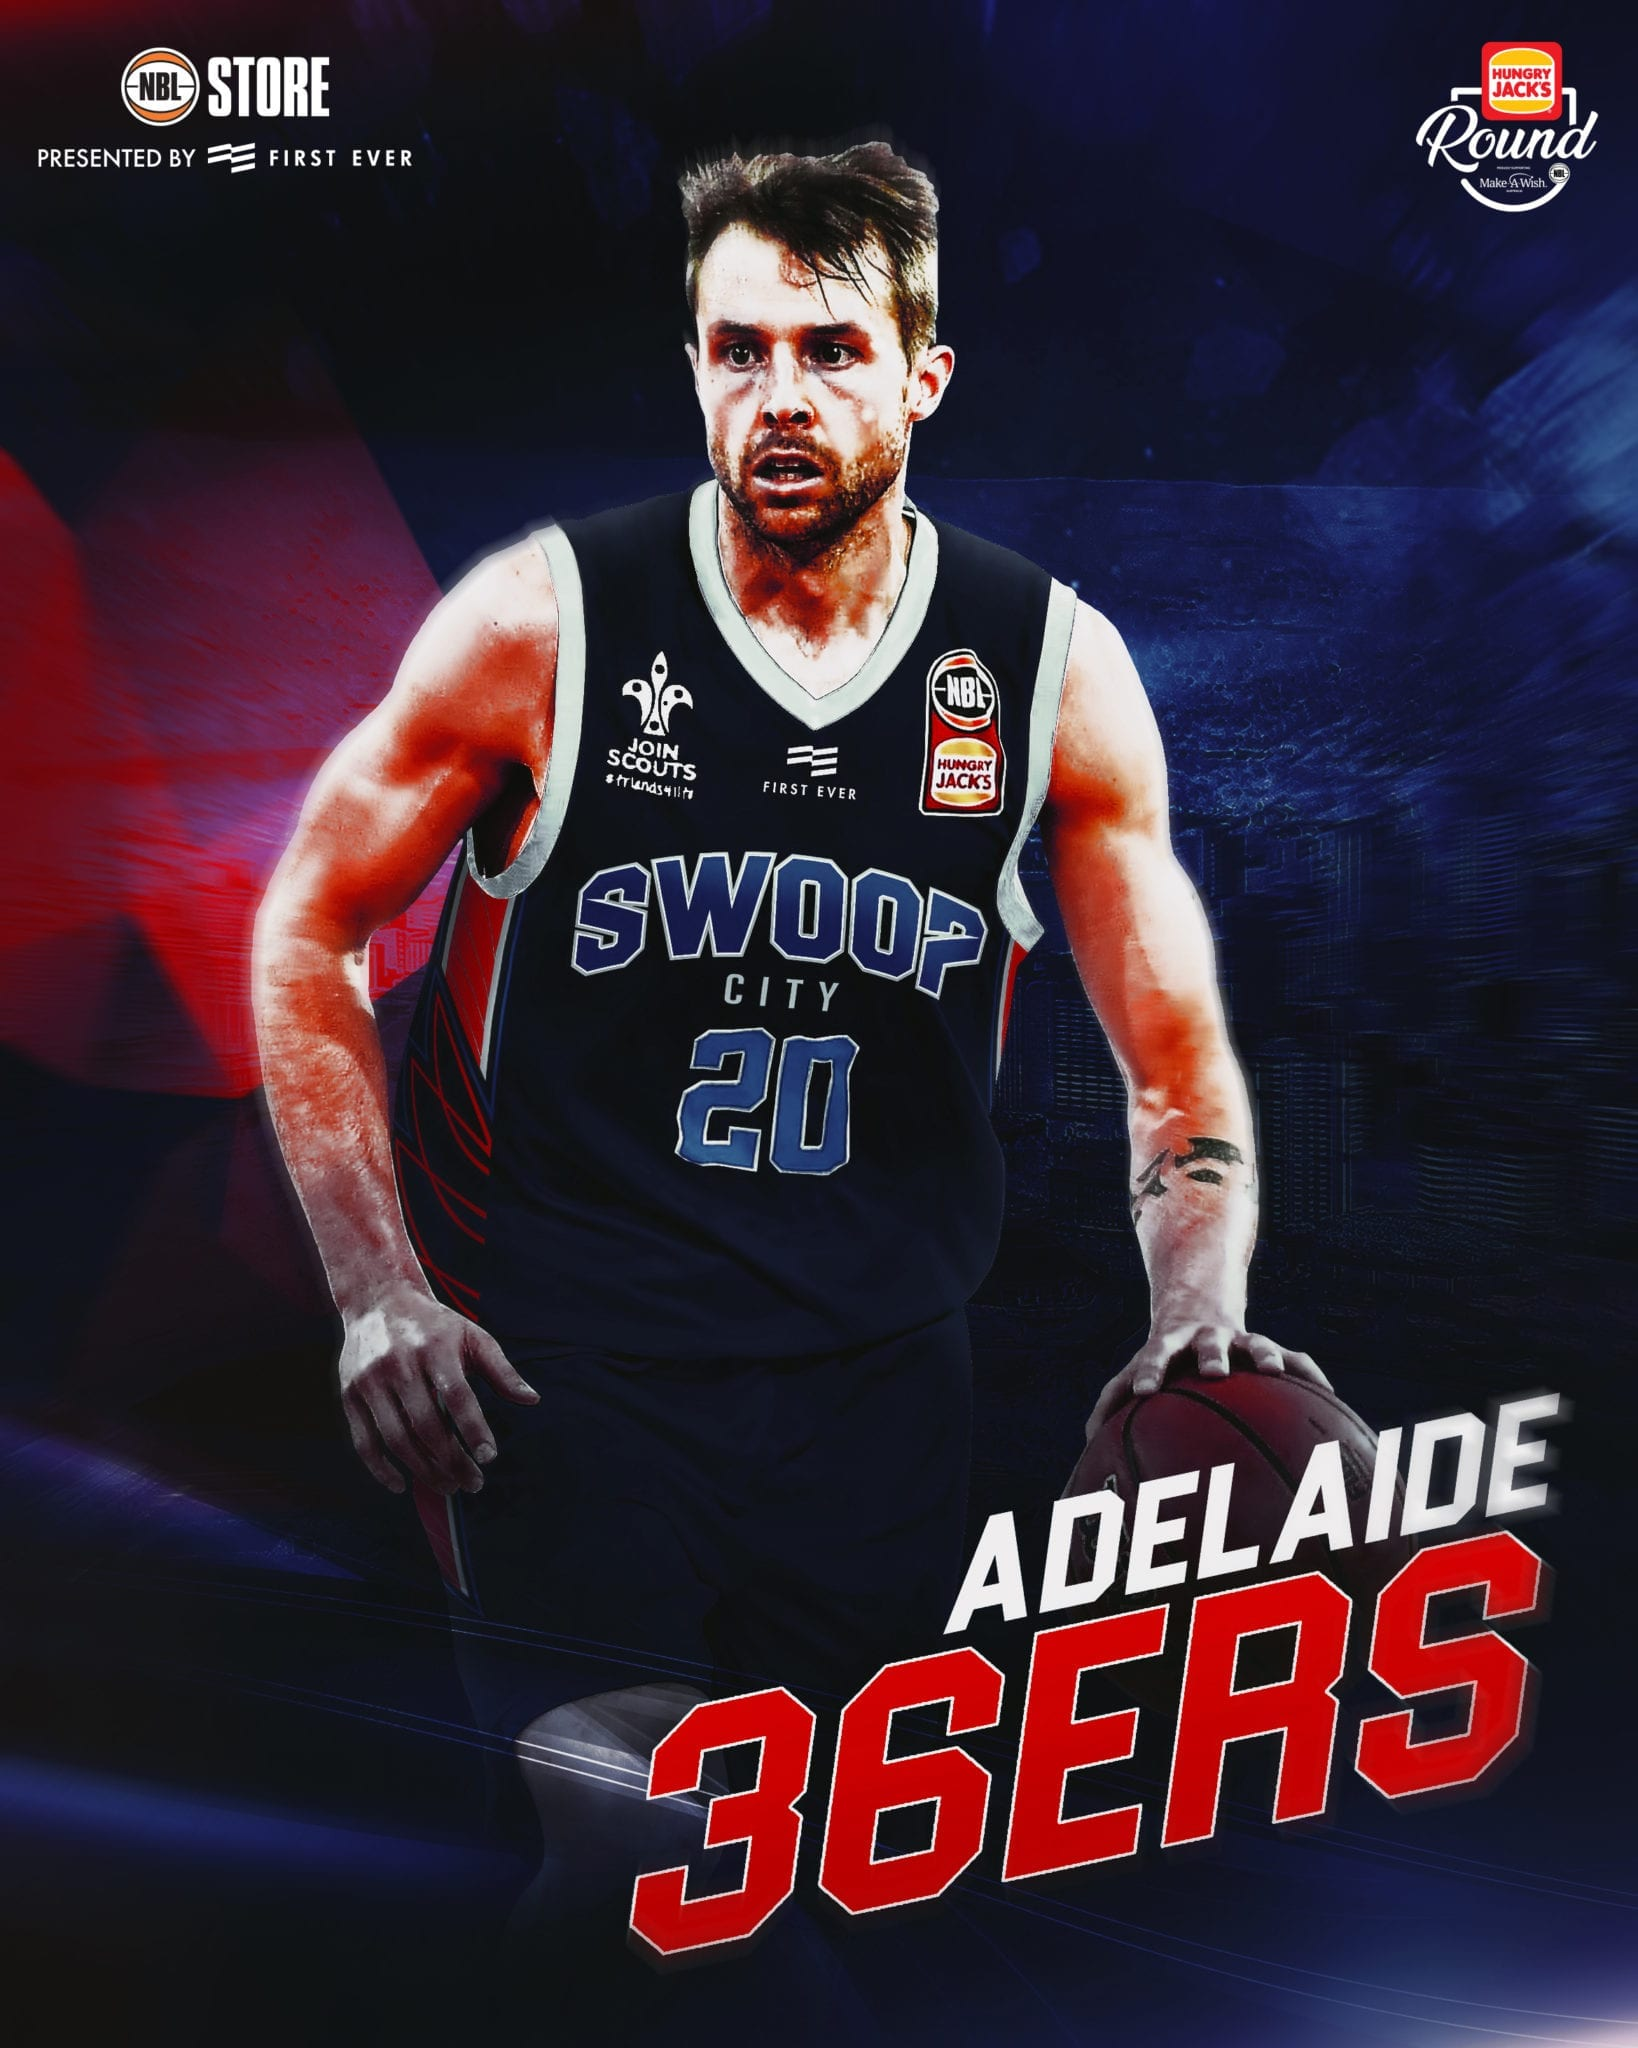 2db3a6793 ADELAIDE – The 36ers have plenty to shout about especially when it comes to  the Swoop City jersey. The shaped side panels represent the outline of  wings as ...